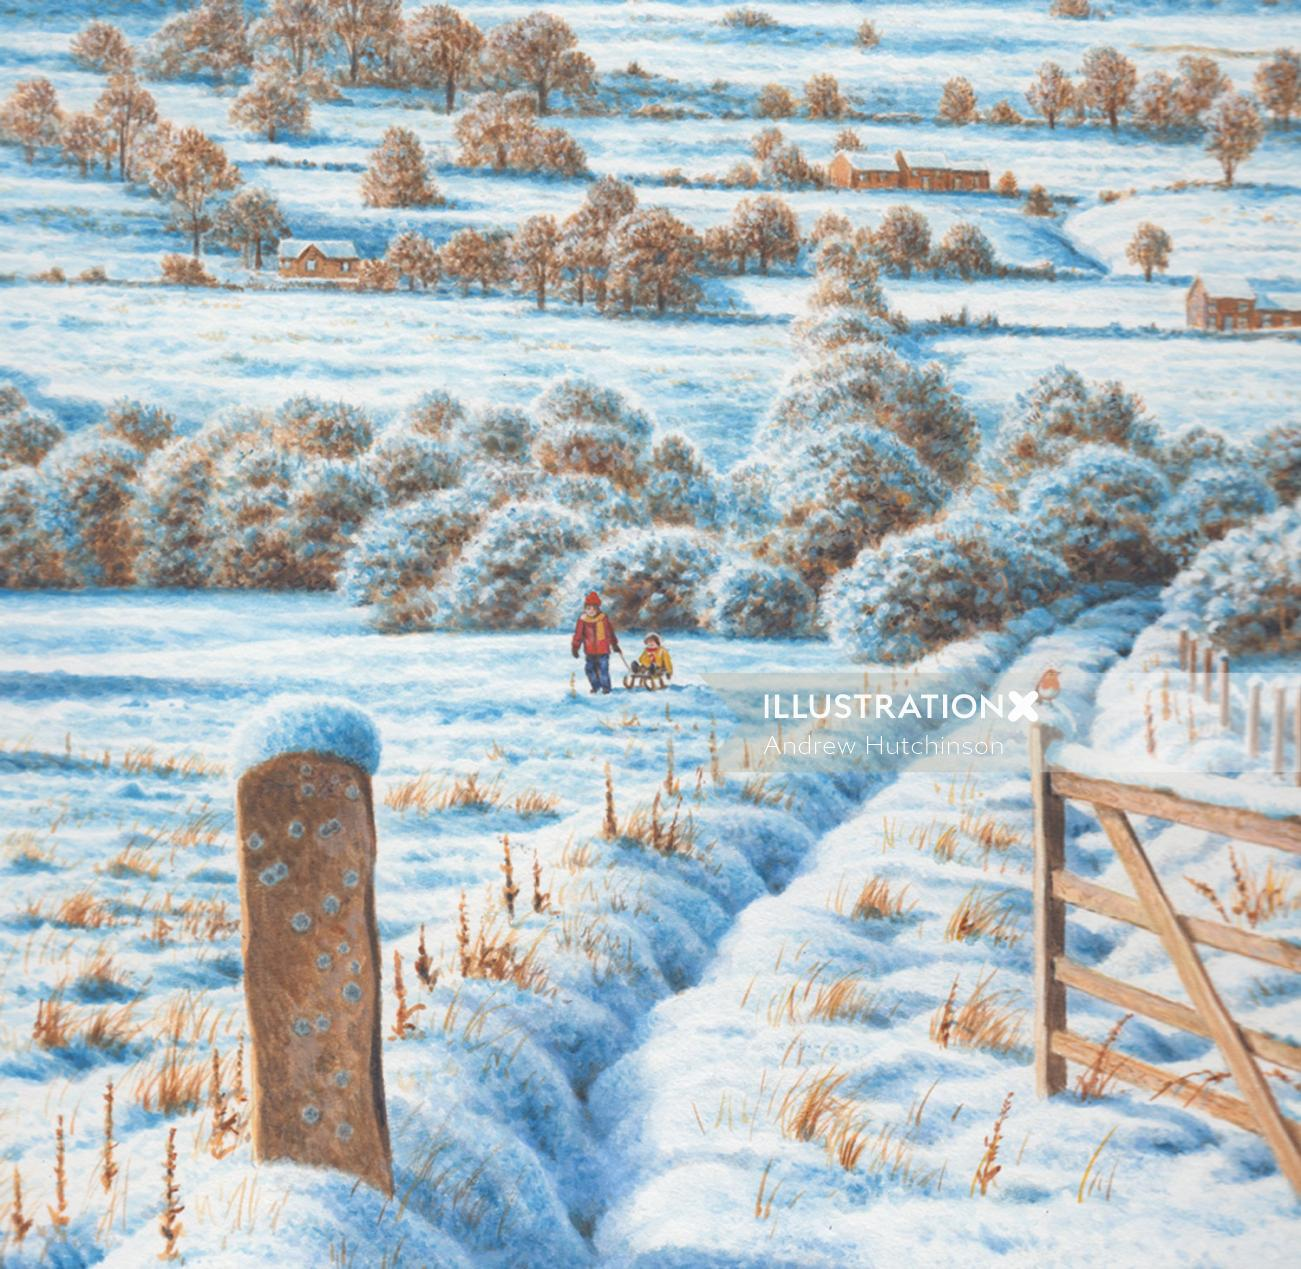 Yorkshire tea plantation covered with snow - An illustration by Andrew Hutchinson